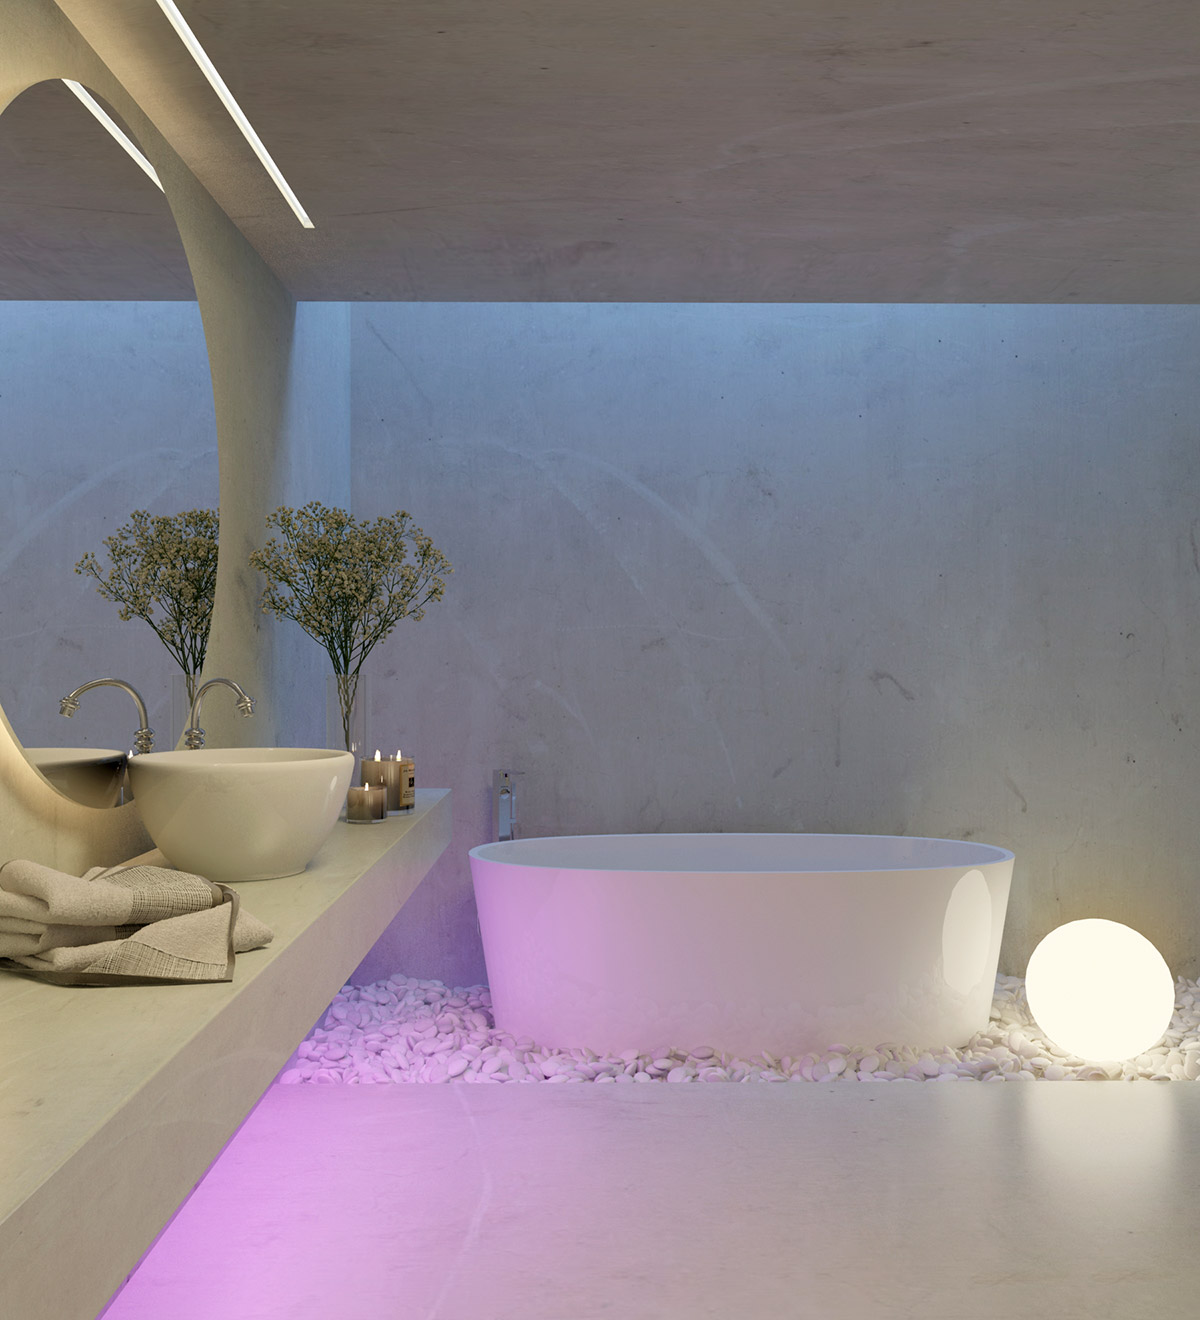 50 Luxury Bathrooms And Tips You Can Copy From Them images 15